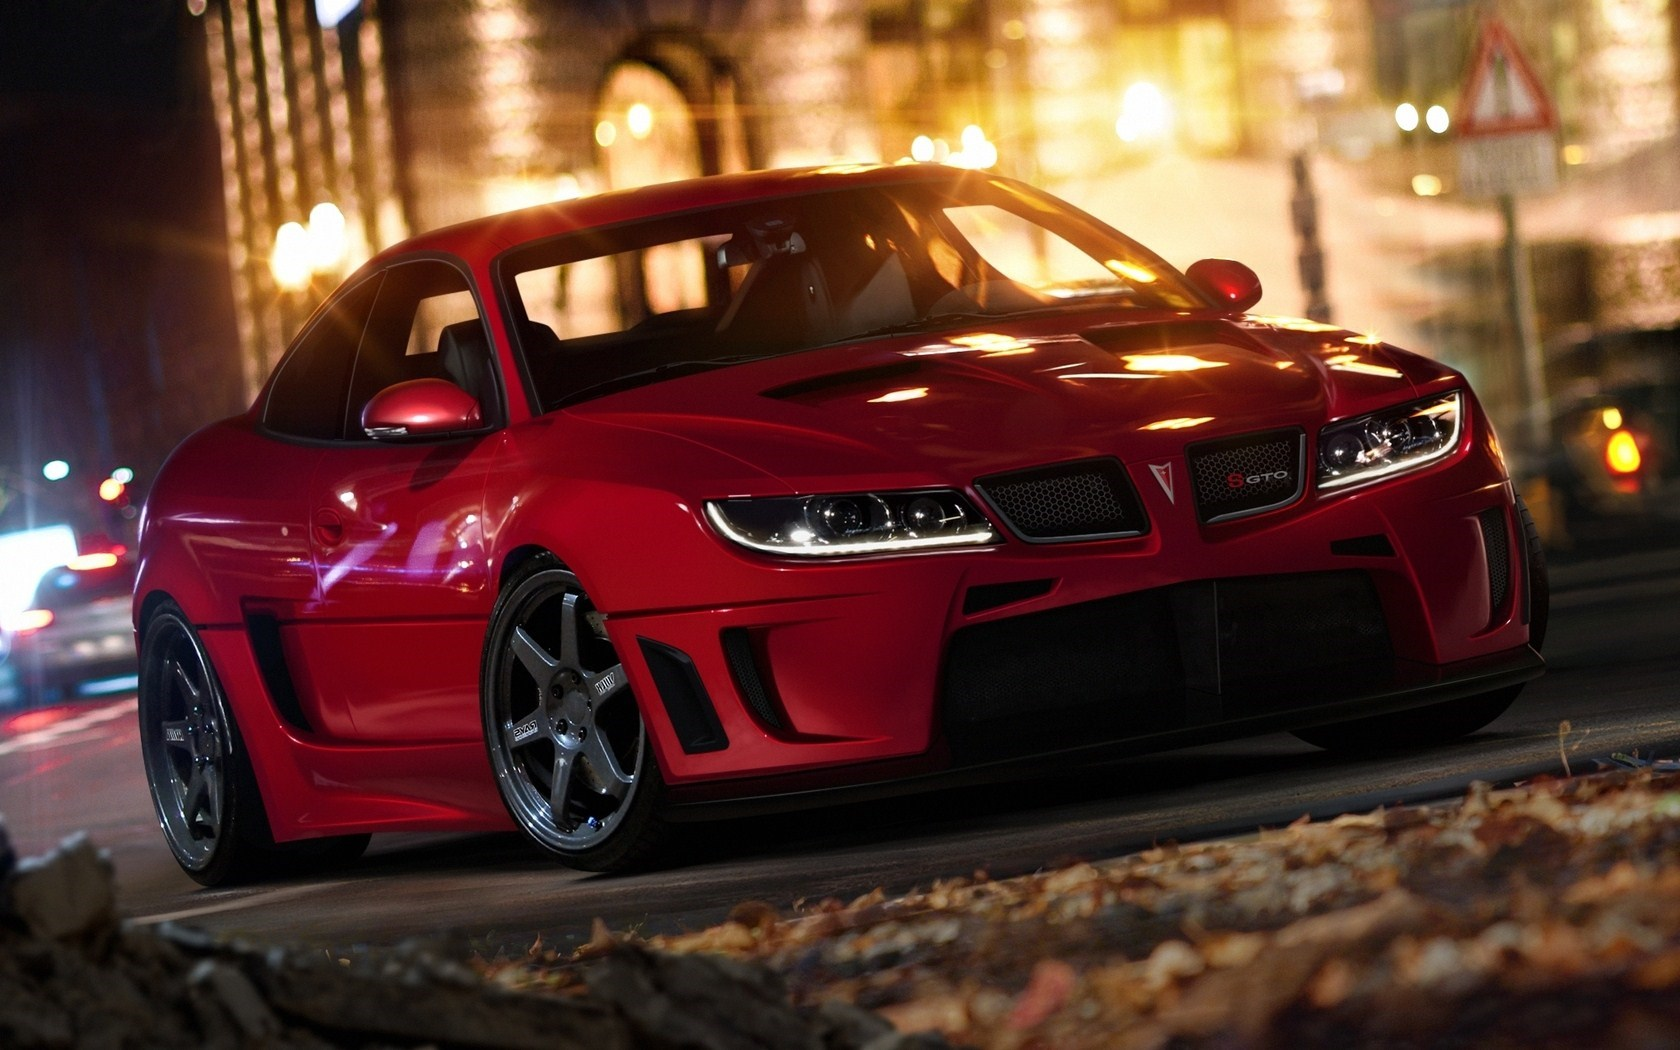 Pontiac GTO Wallpaper and Background Image | 1680x1050 ...